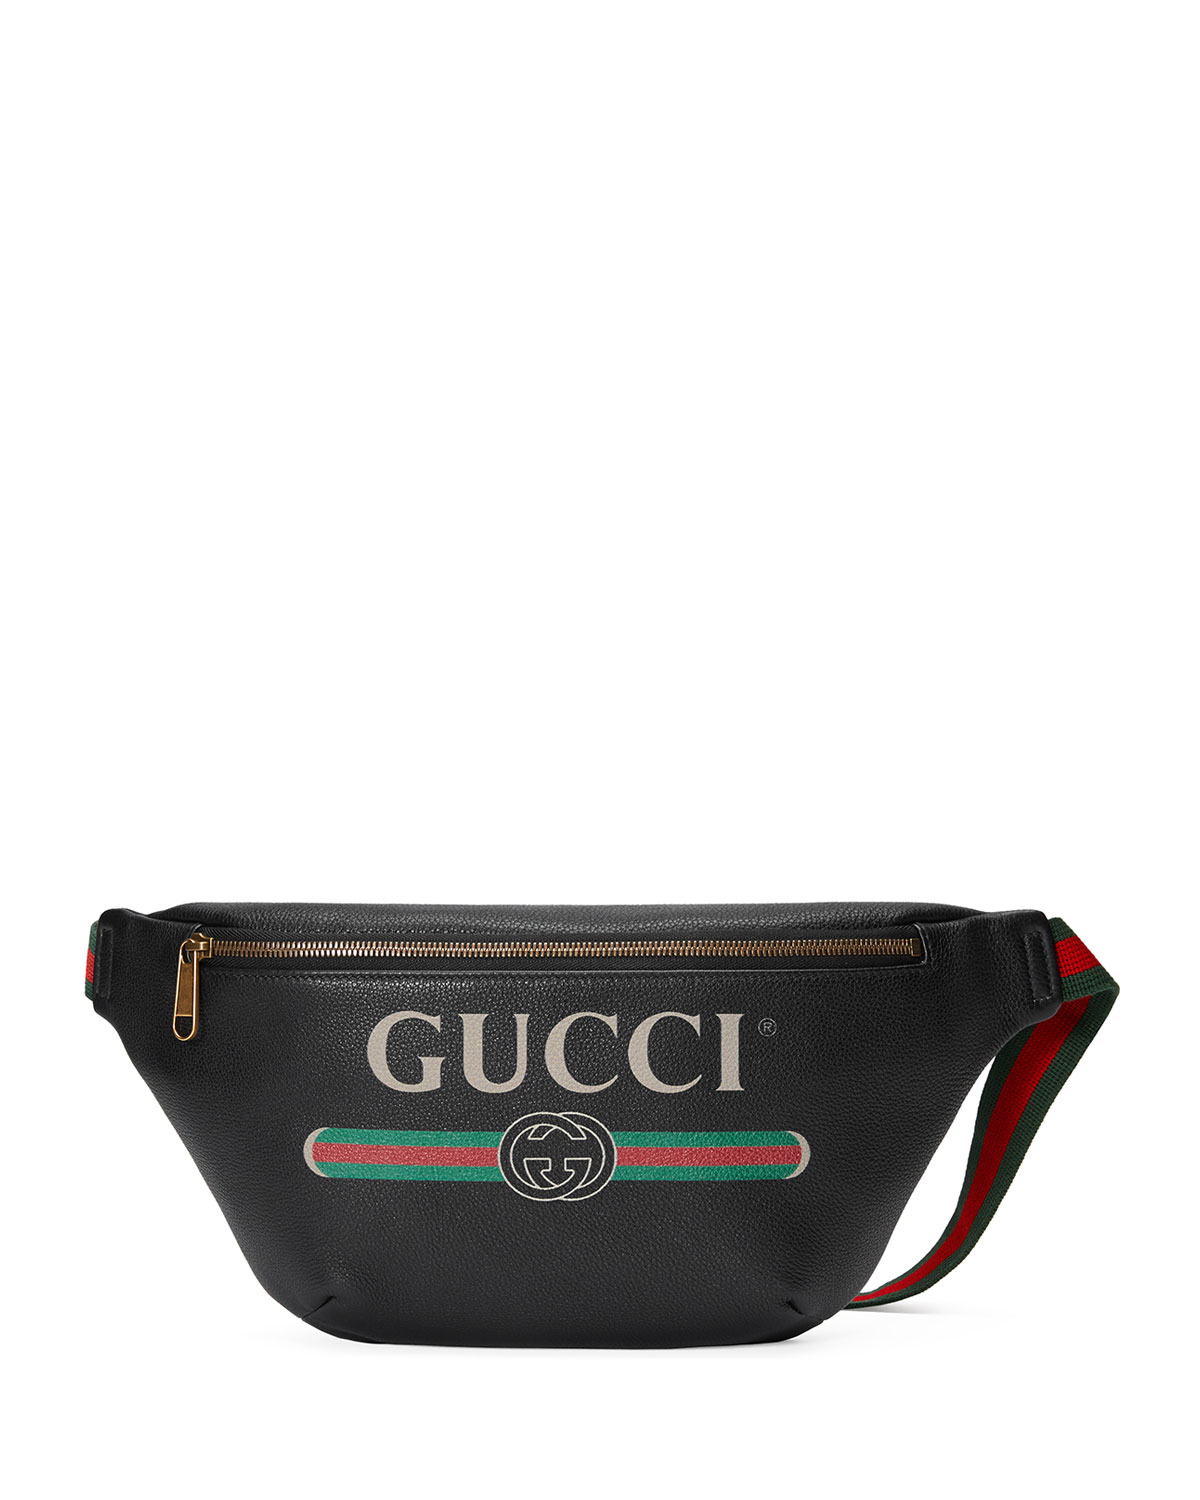 071f74eacd0 Gucci Men s Retro Logo Belt Bag Fanny Pack